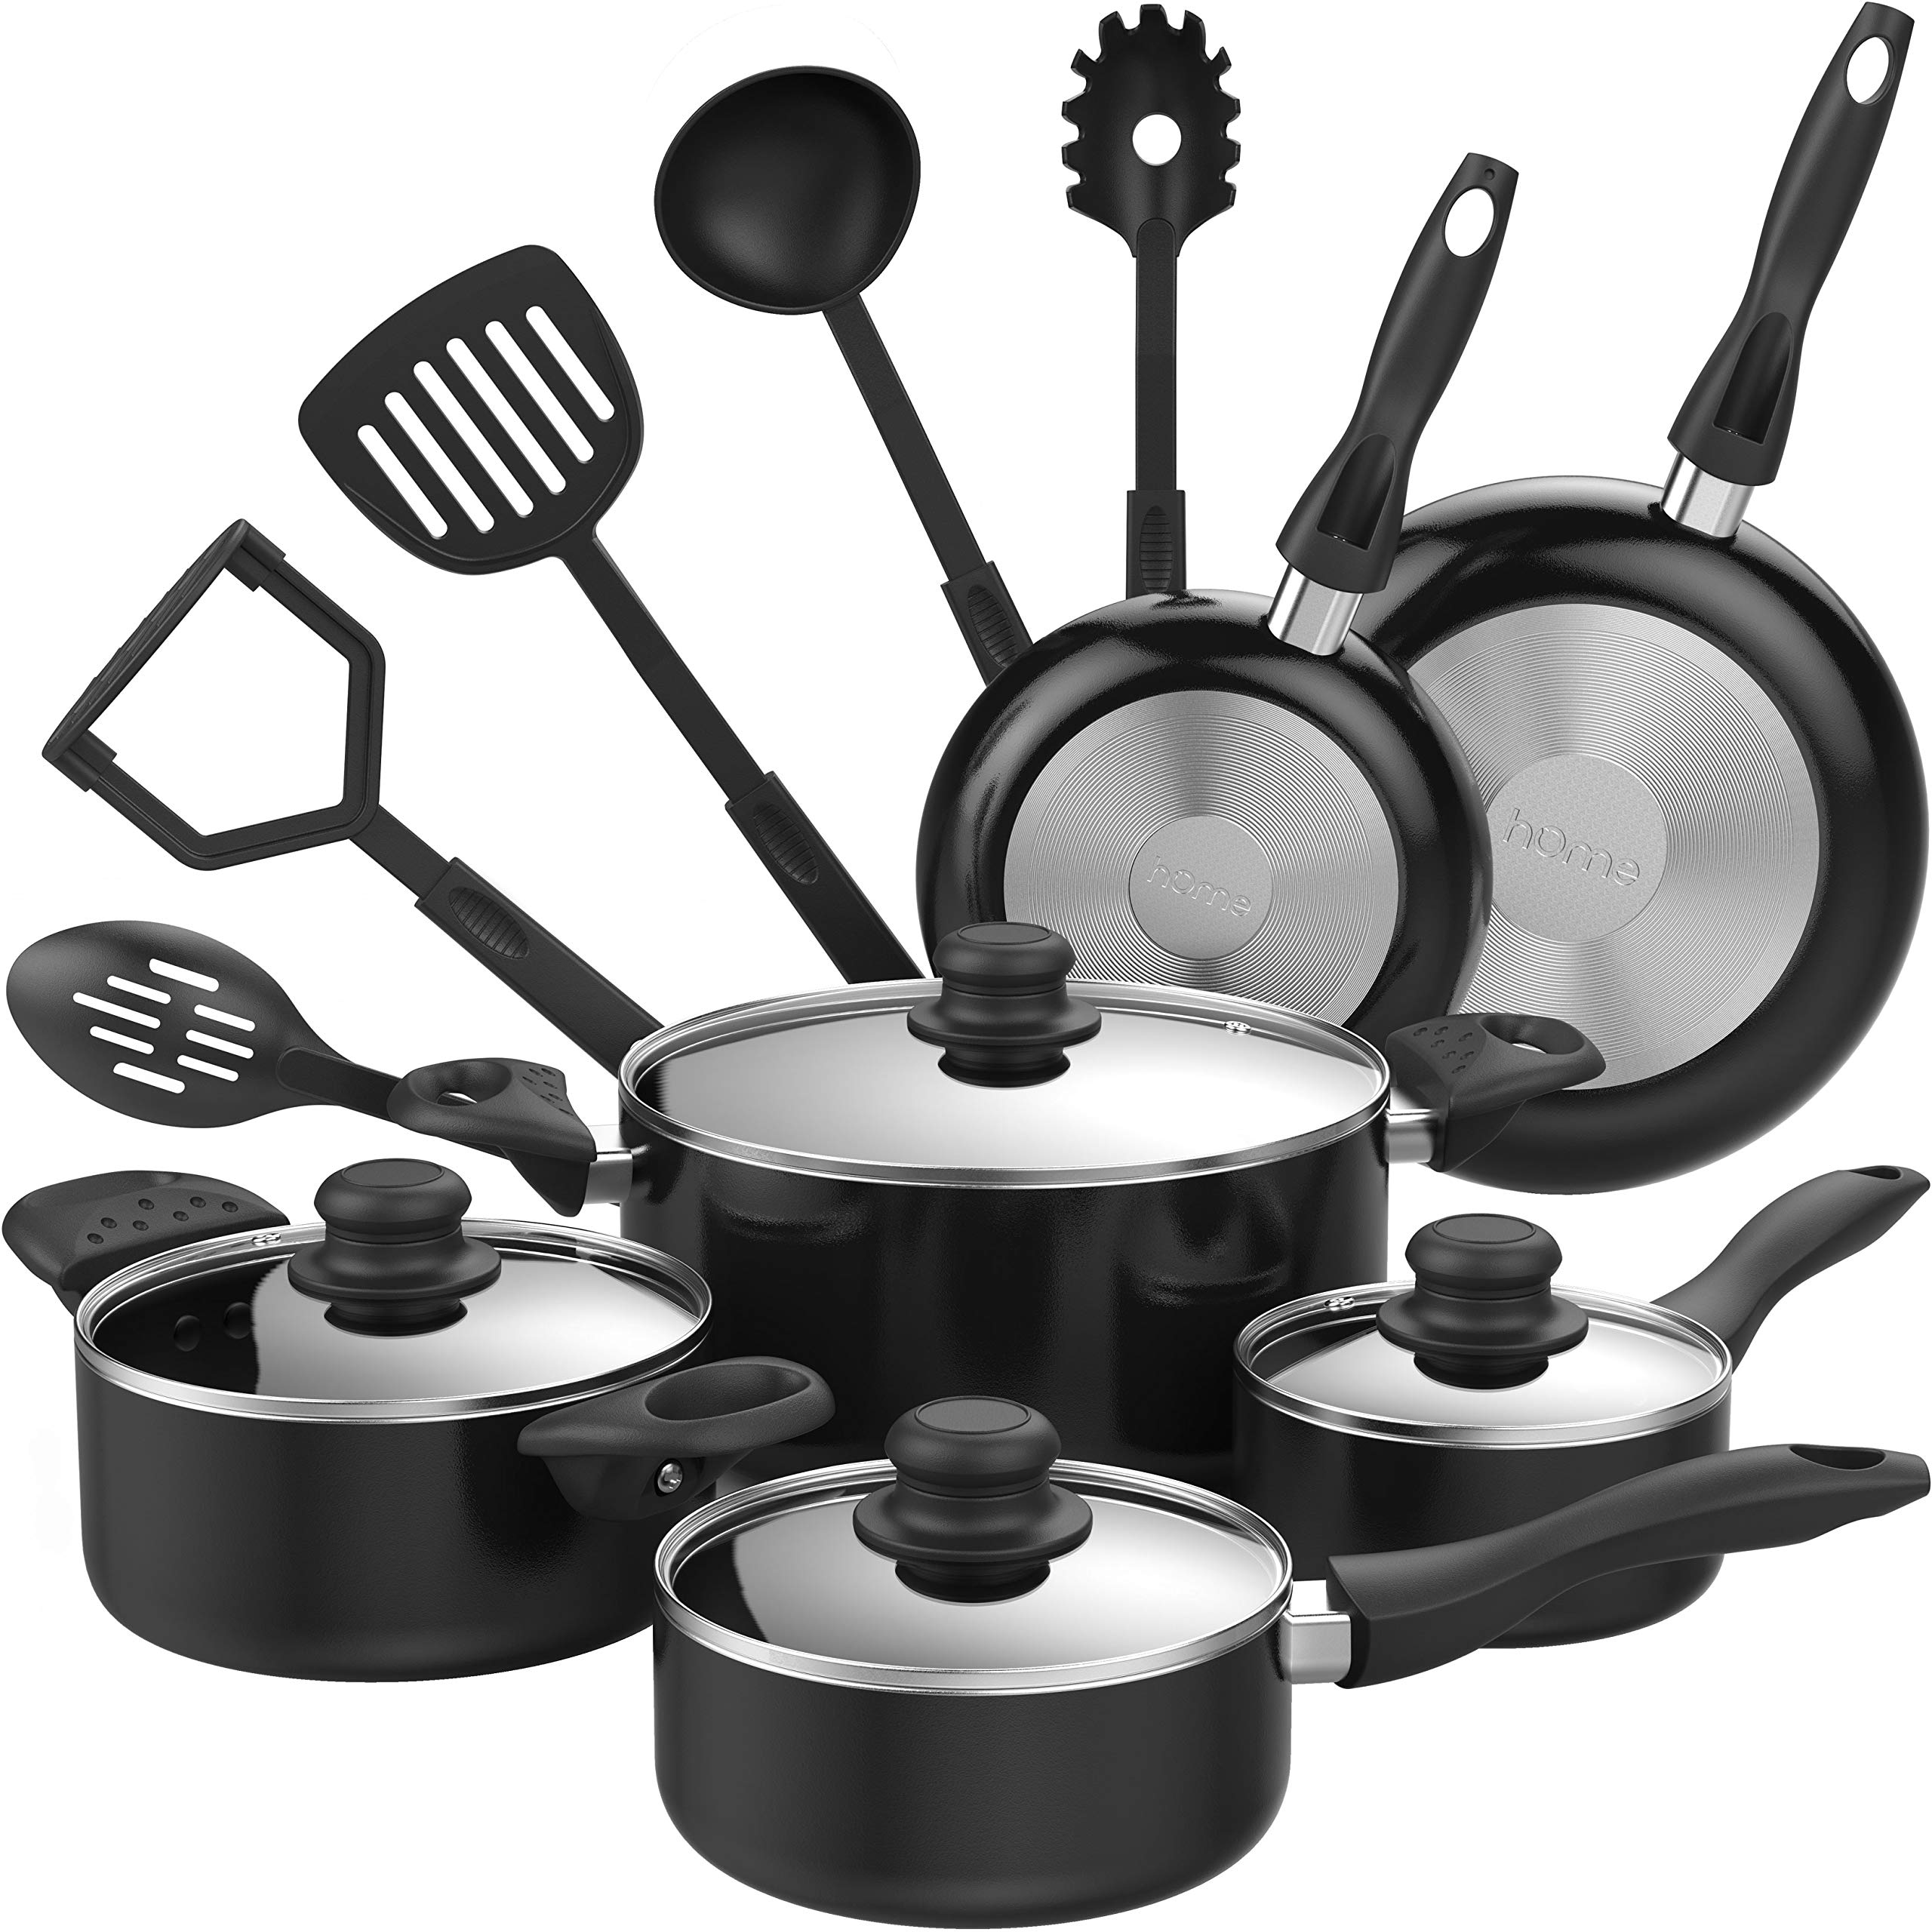 Kitchen Set Pots And Pans: HOmeLabs 15 Piece Nonstick Cookware Set